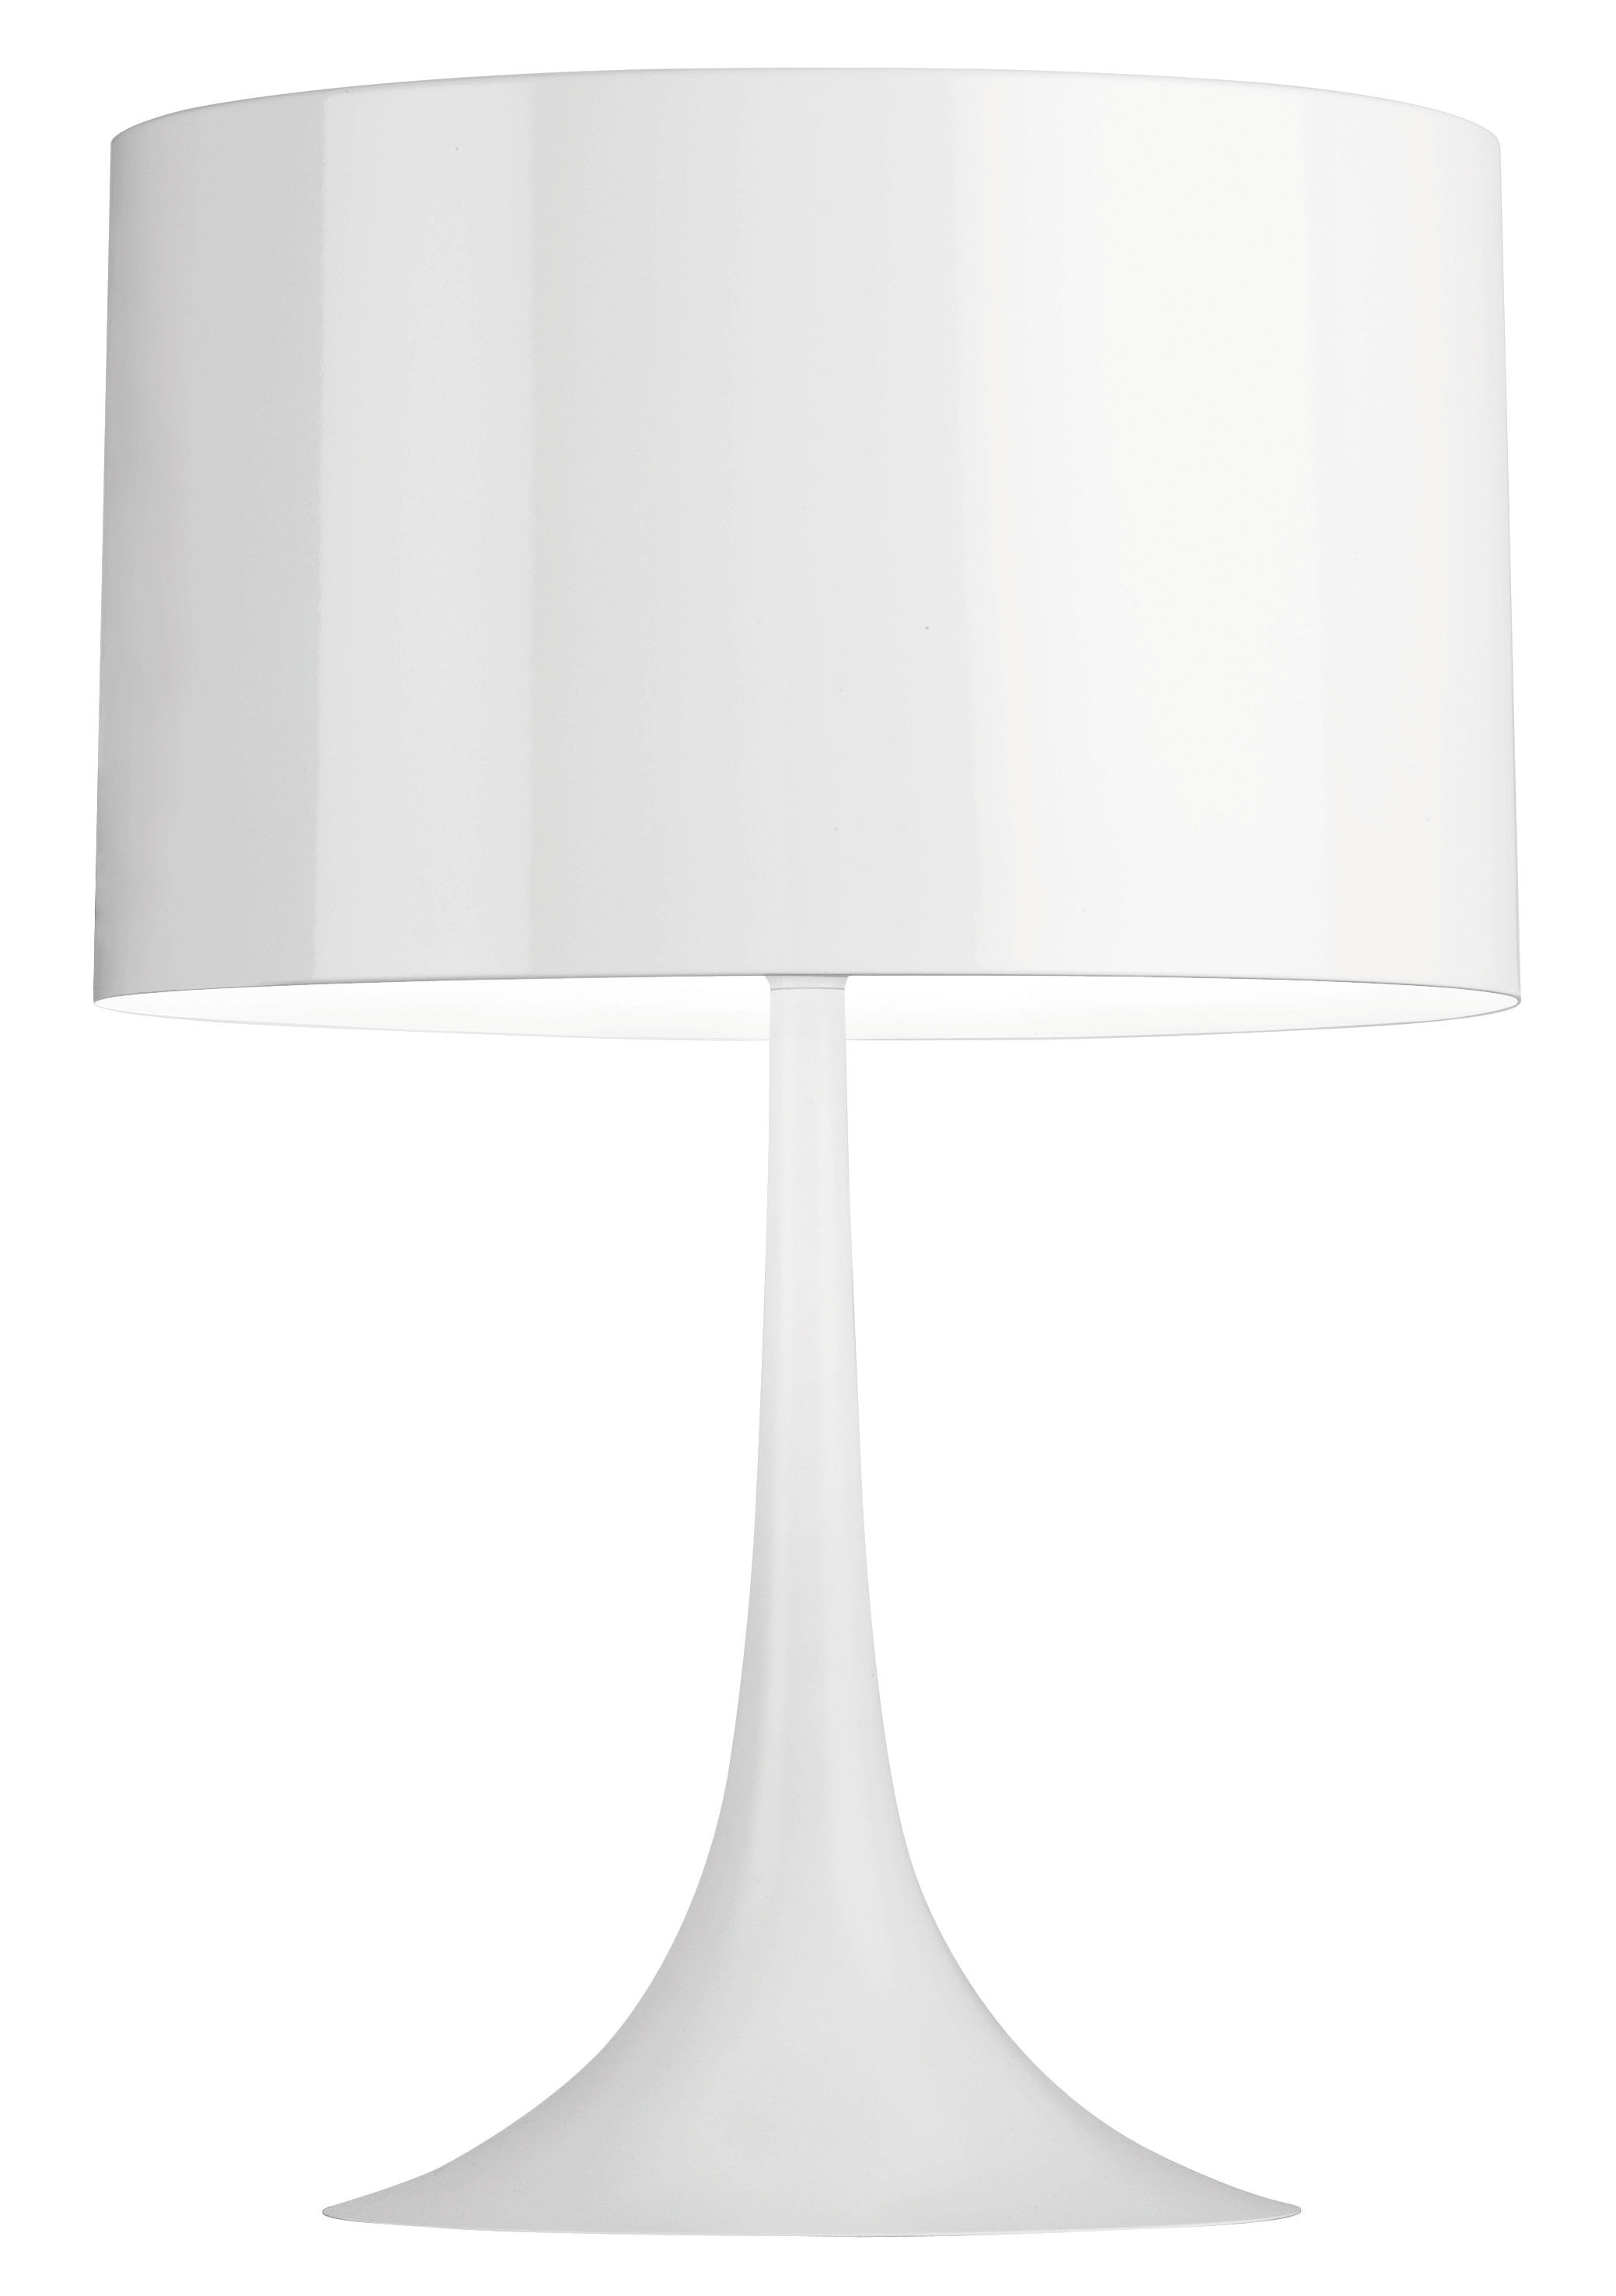 Lighting - Table Lamps - Spun Light T1 Table lamp - H 57 cm by Flos - Shining white - Metal